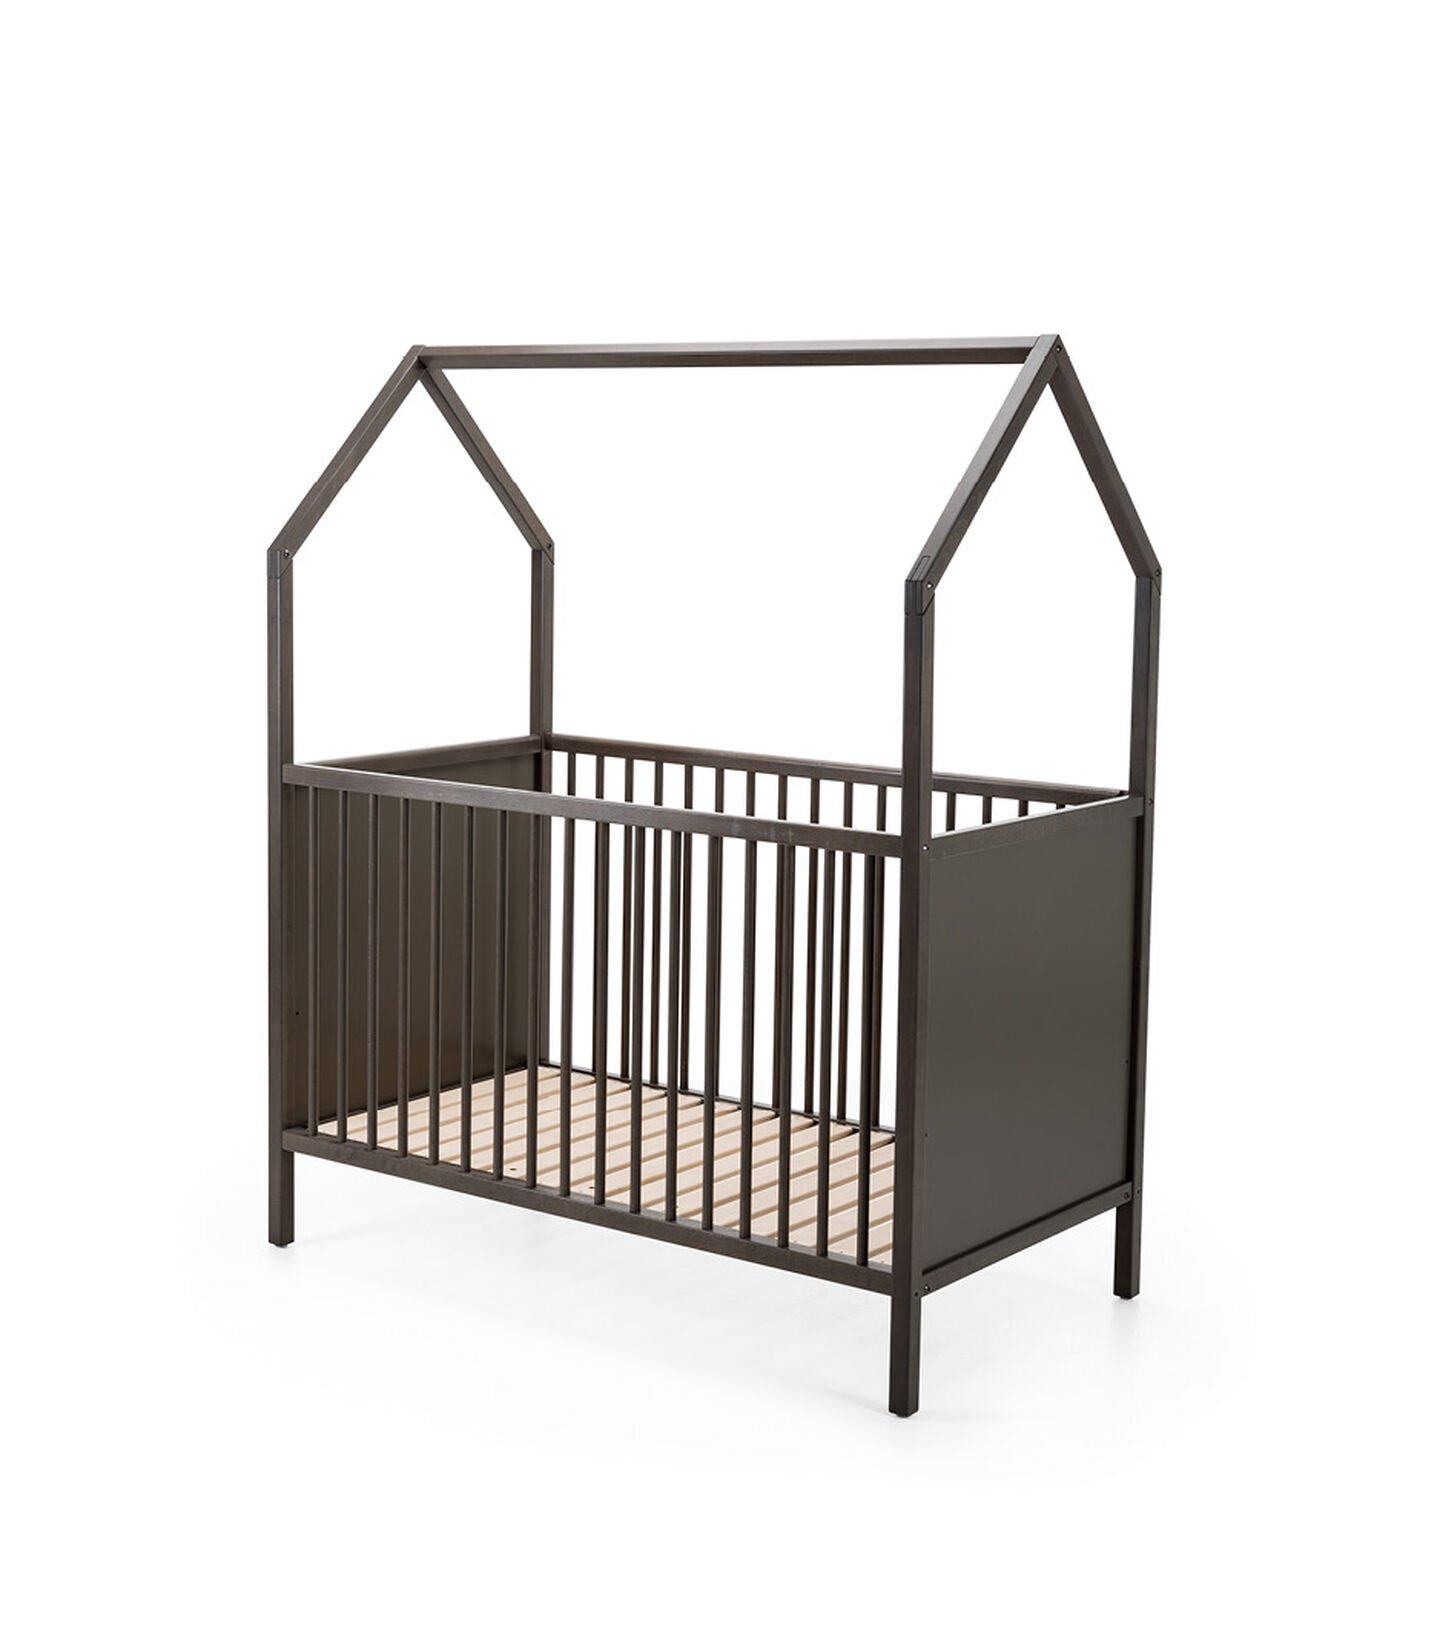 Stokke® Home™ Bed 1 of 2 Hazy Grey, Hazy Grey, mainview